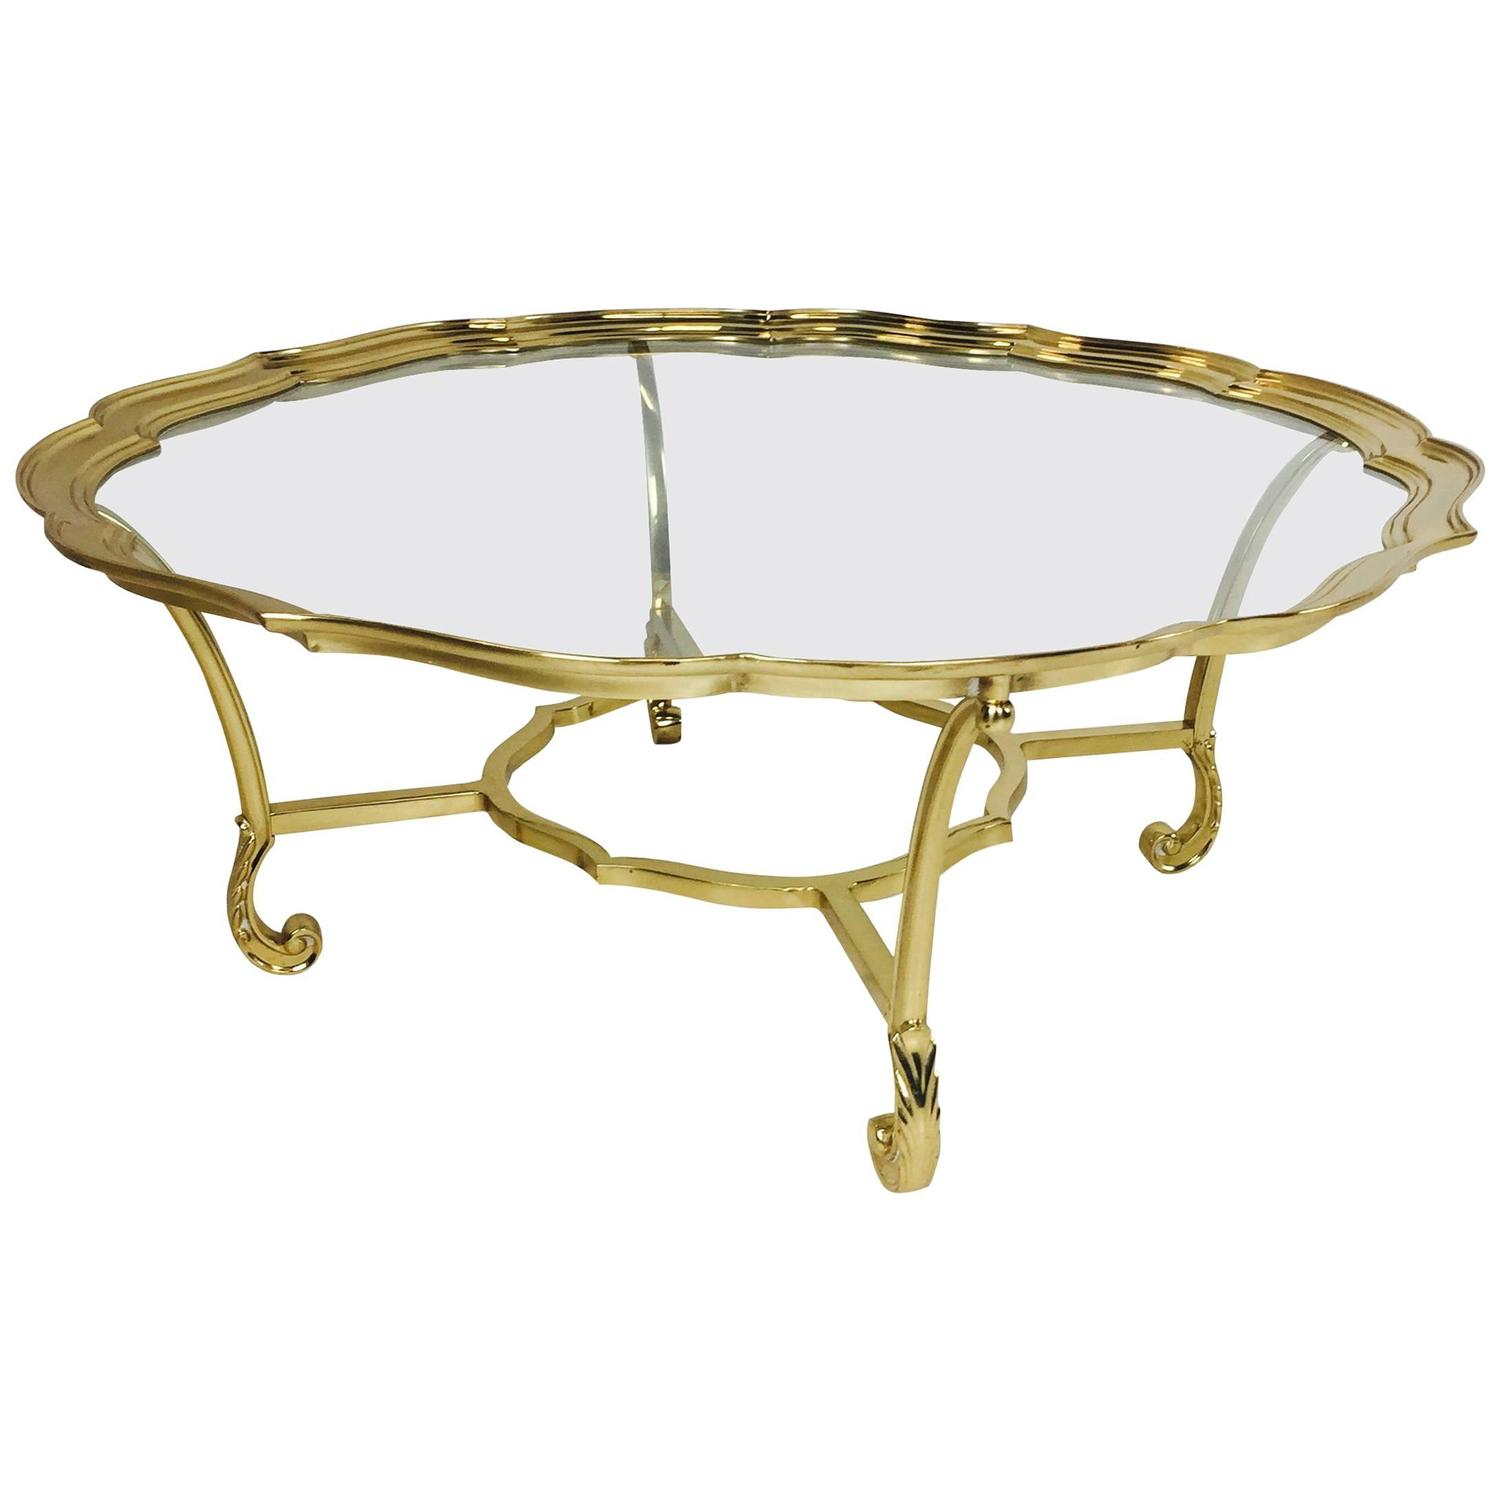 Hollywood Regency Scalloped Edge Brass and Glass Coffee Table by